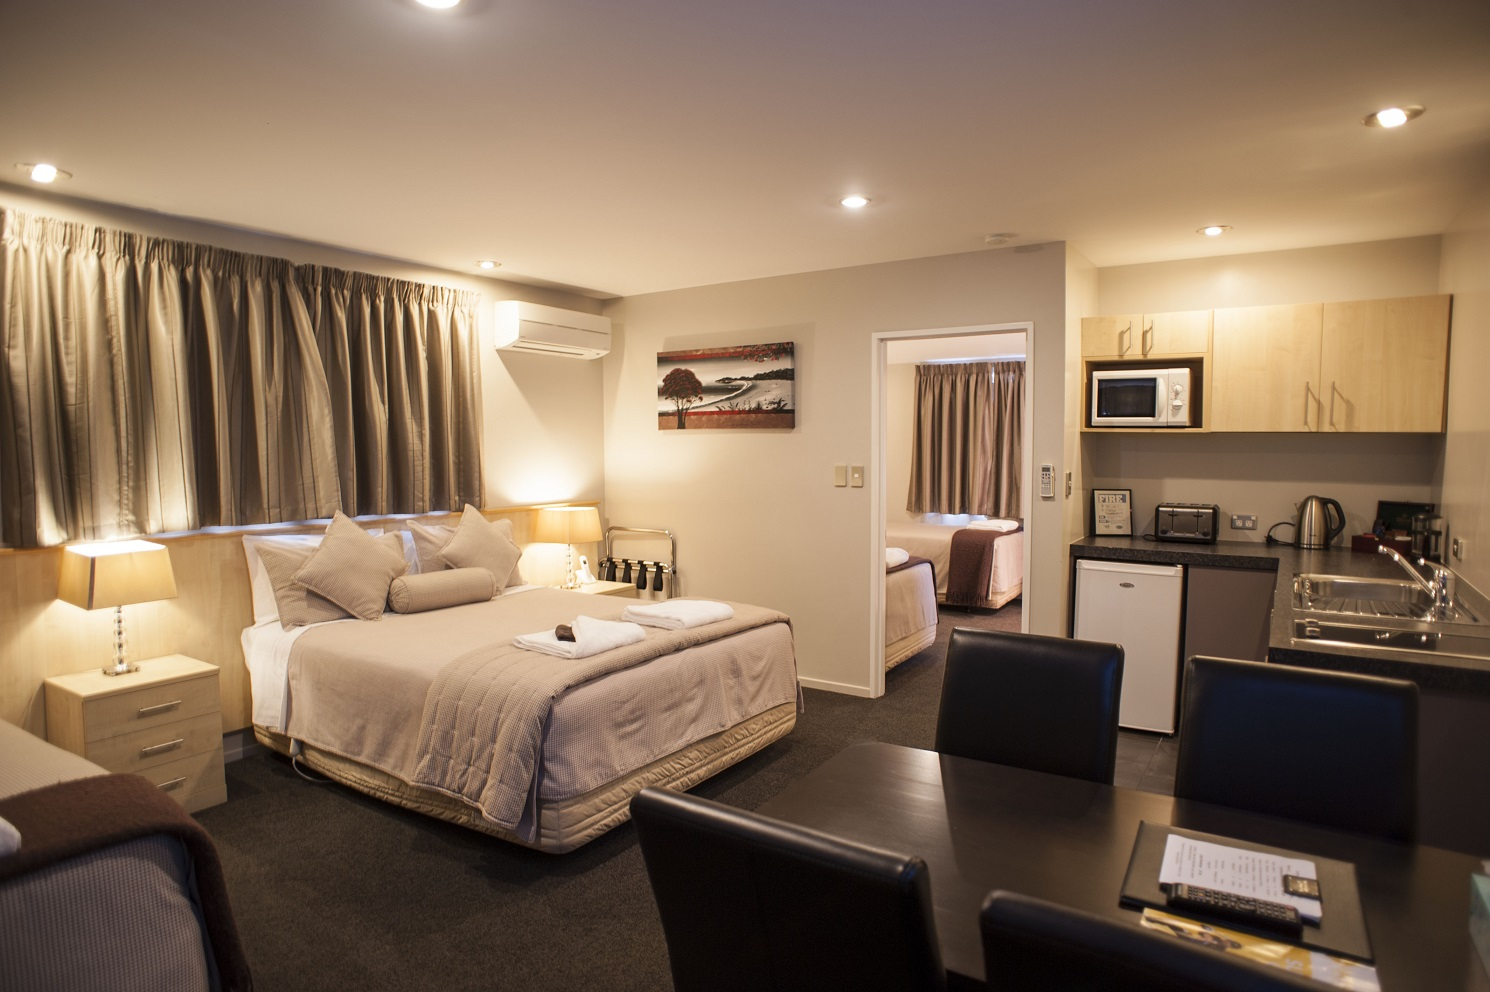 Christchurch luxury apartment qualmark 5 star 1 bedroom for One big room apartment